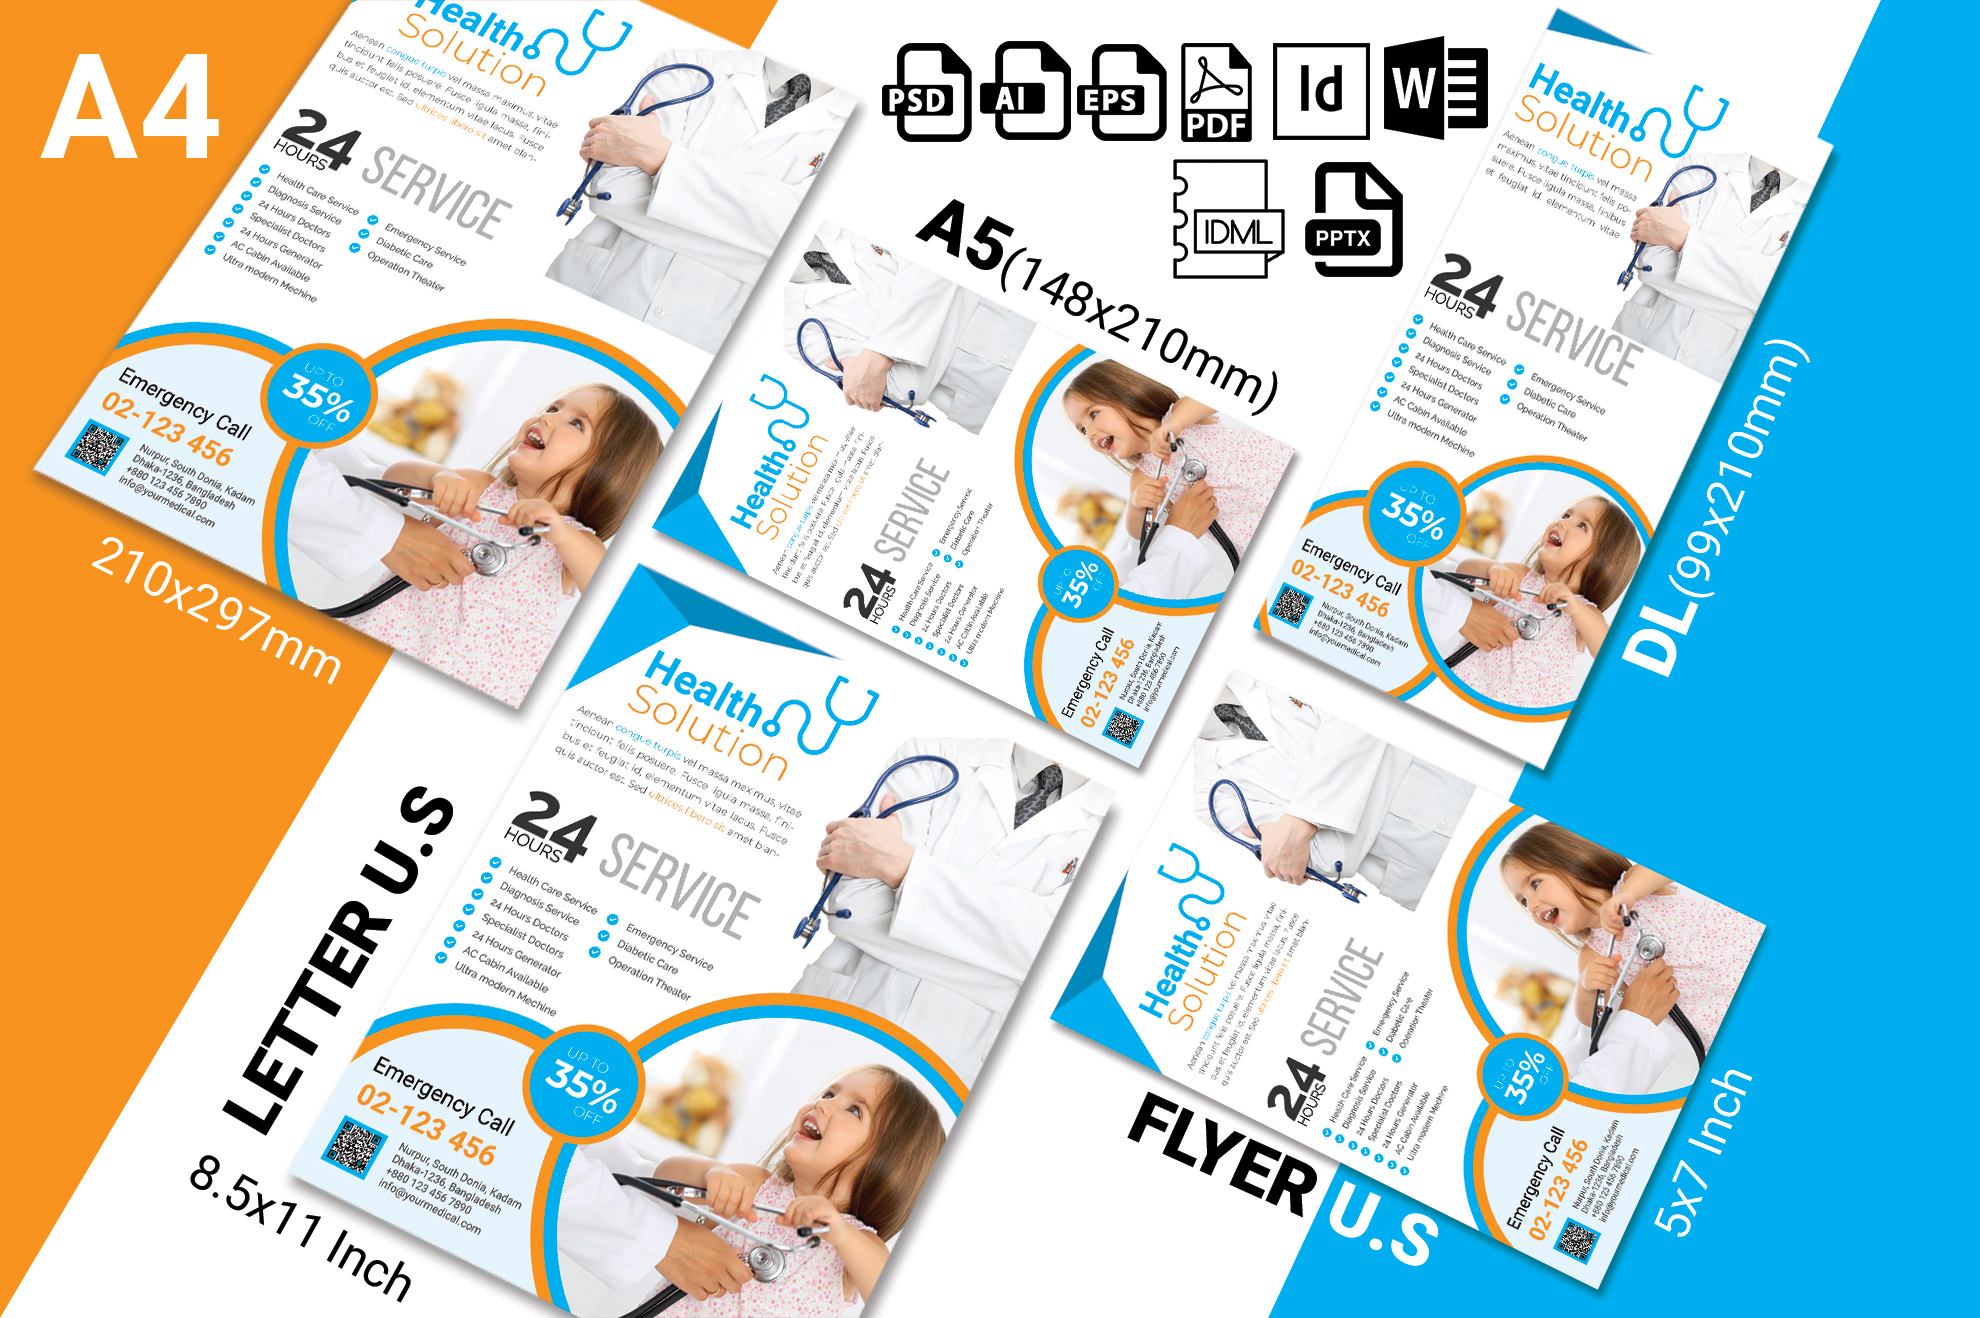 Doctor & Medical Flyer. Vol-03 example image 2